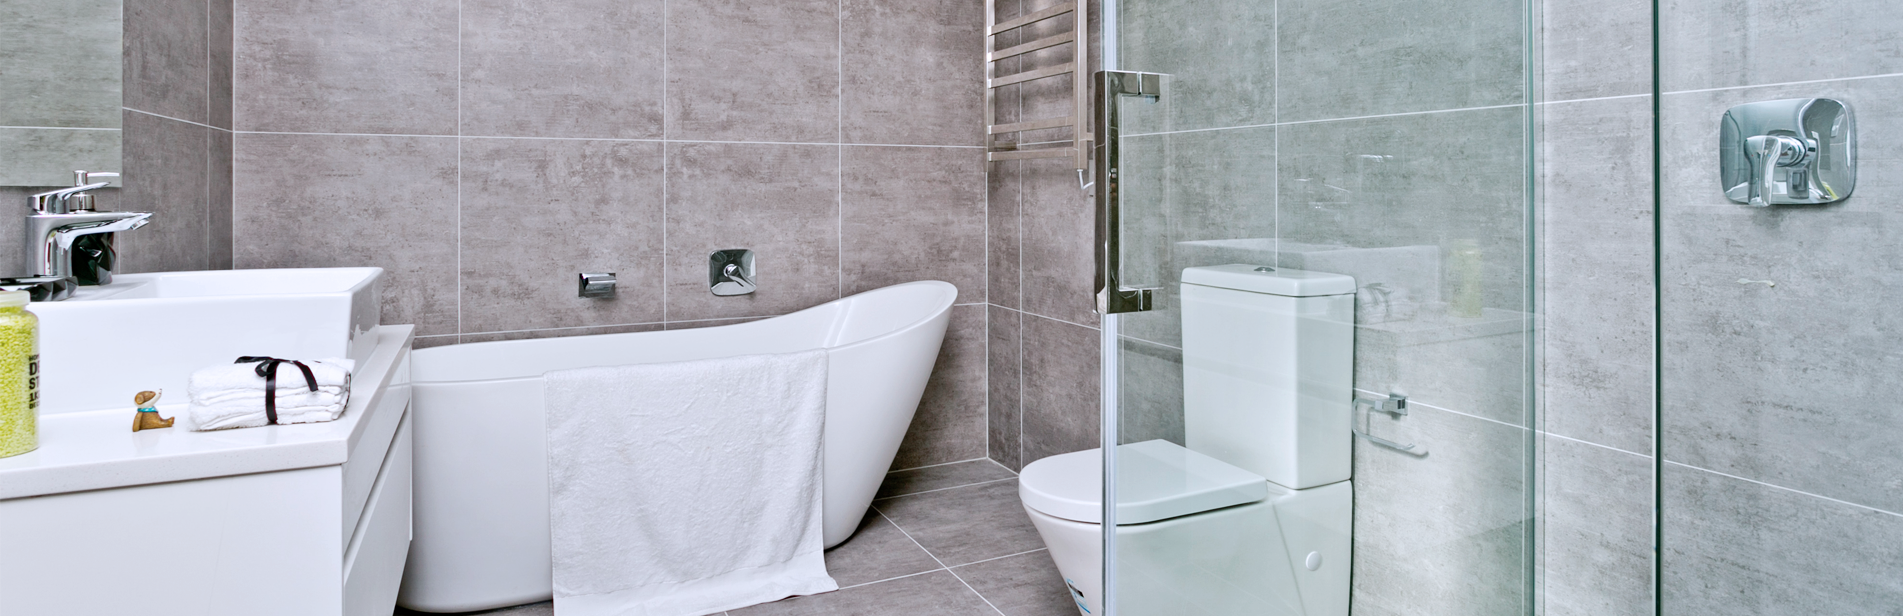 Bathroom Renovations Auckland - Renovate with Superior Renovations ®